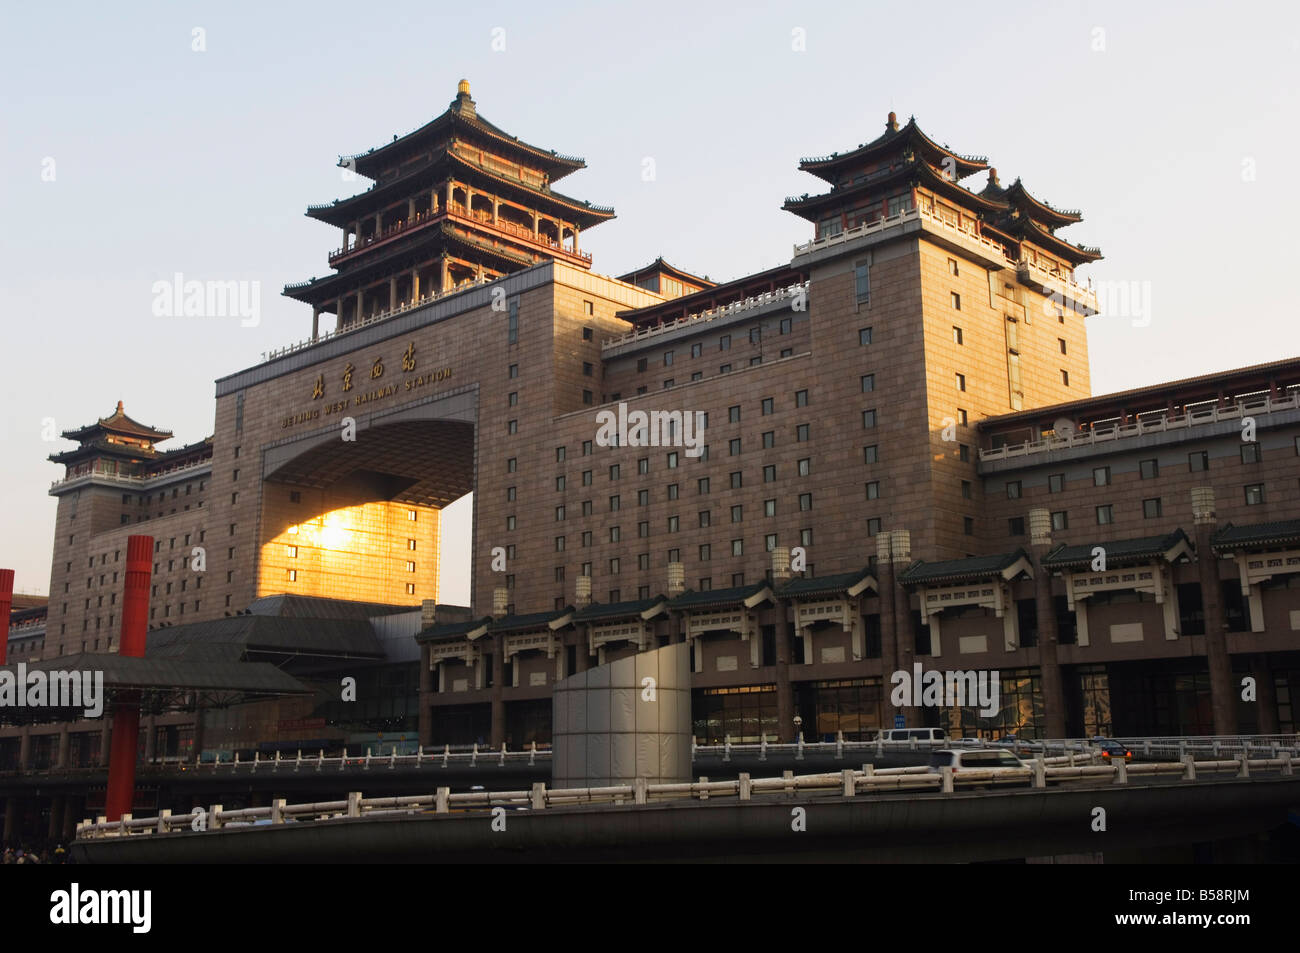 Chinese style and modern architecture combined at Beijing West Train Station, Beijing, China - Stock Image